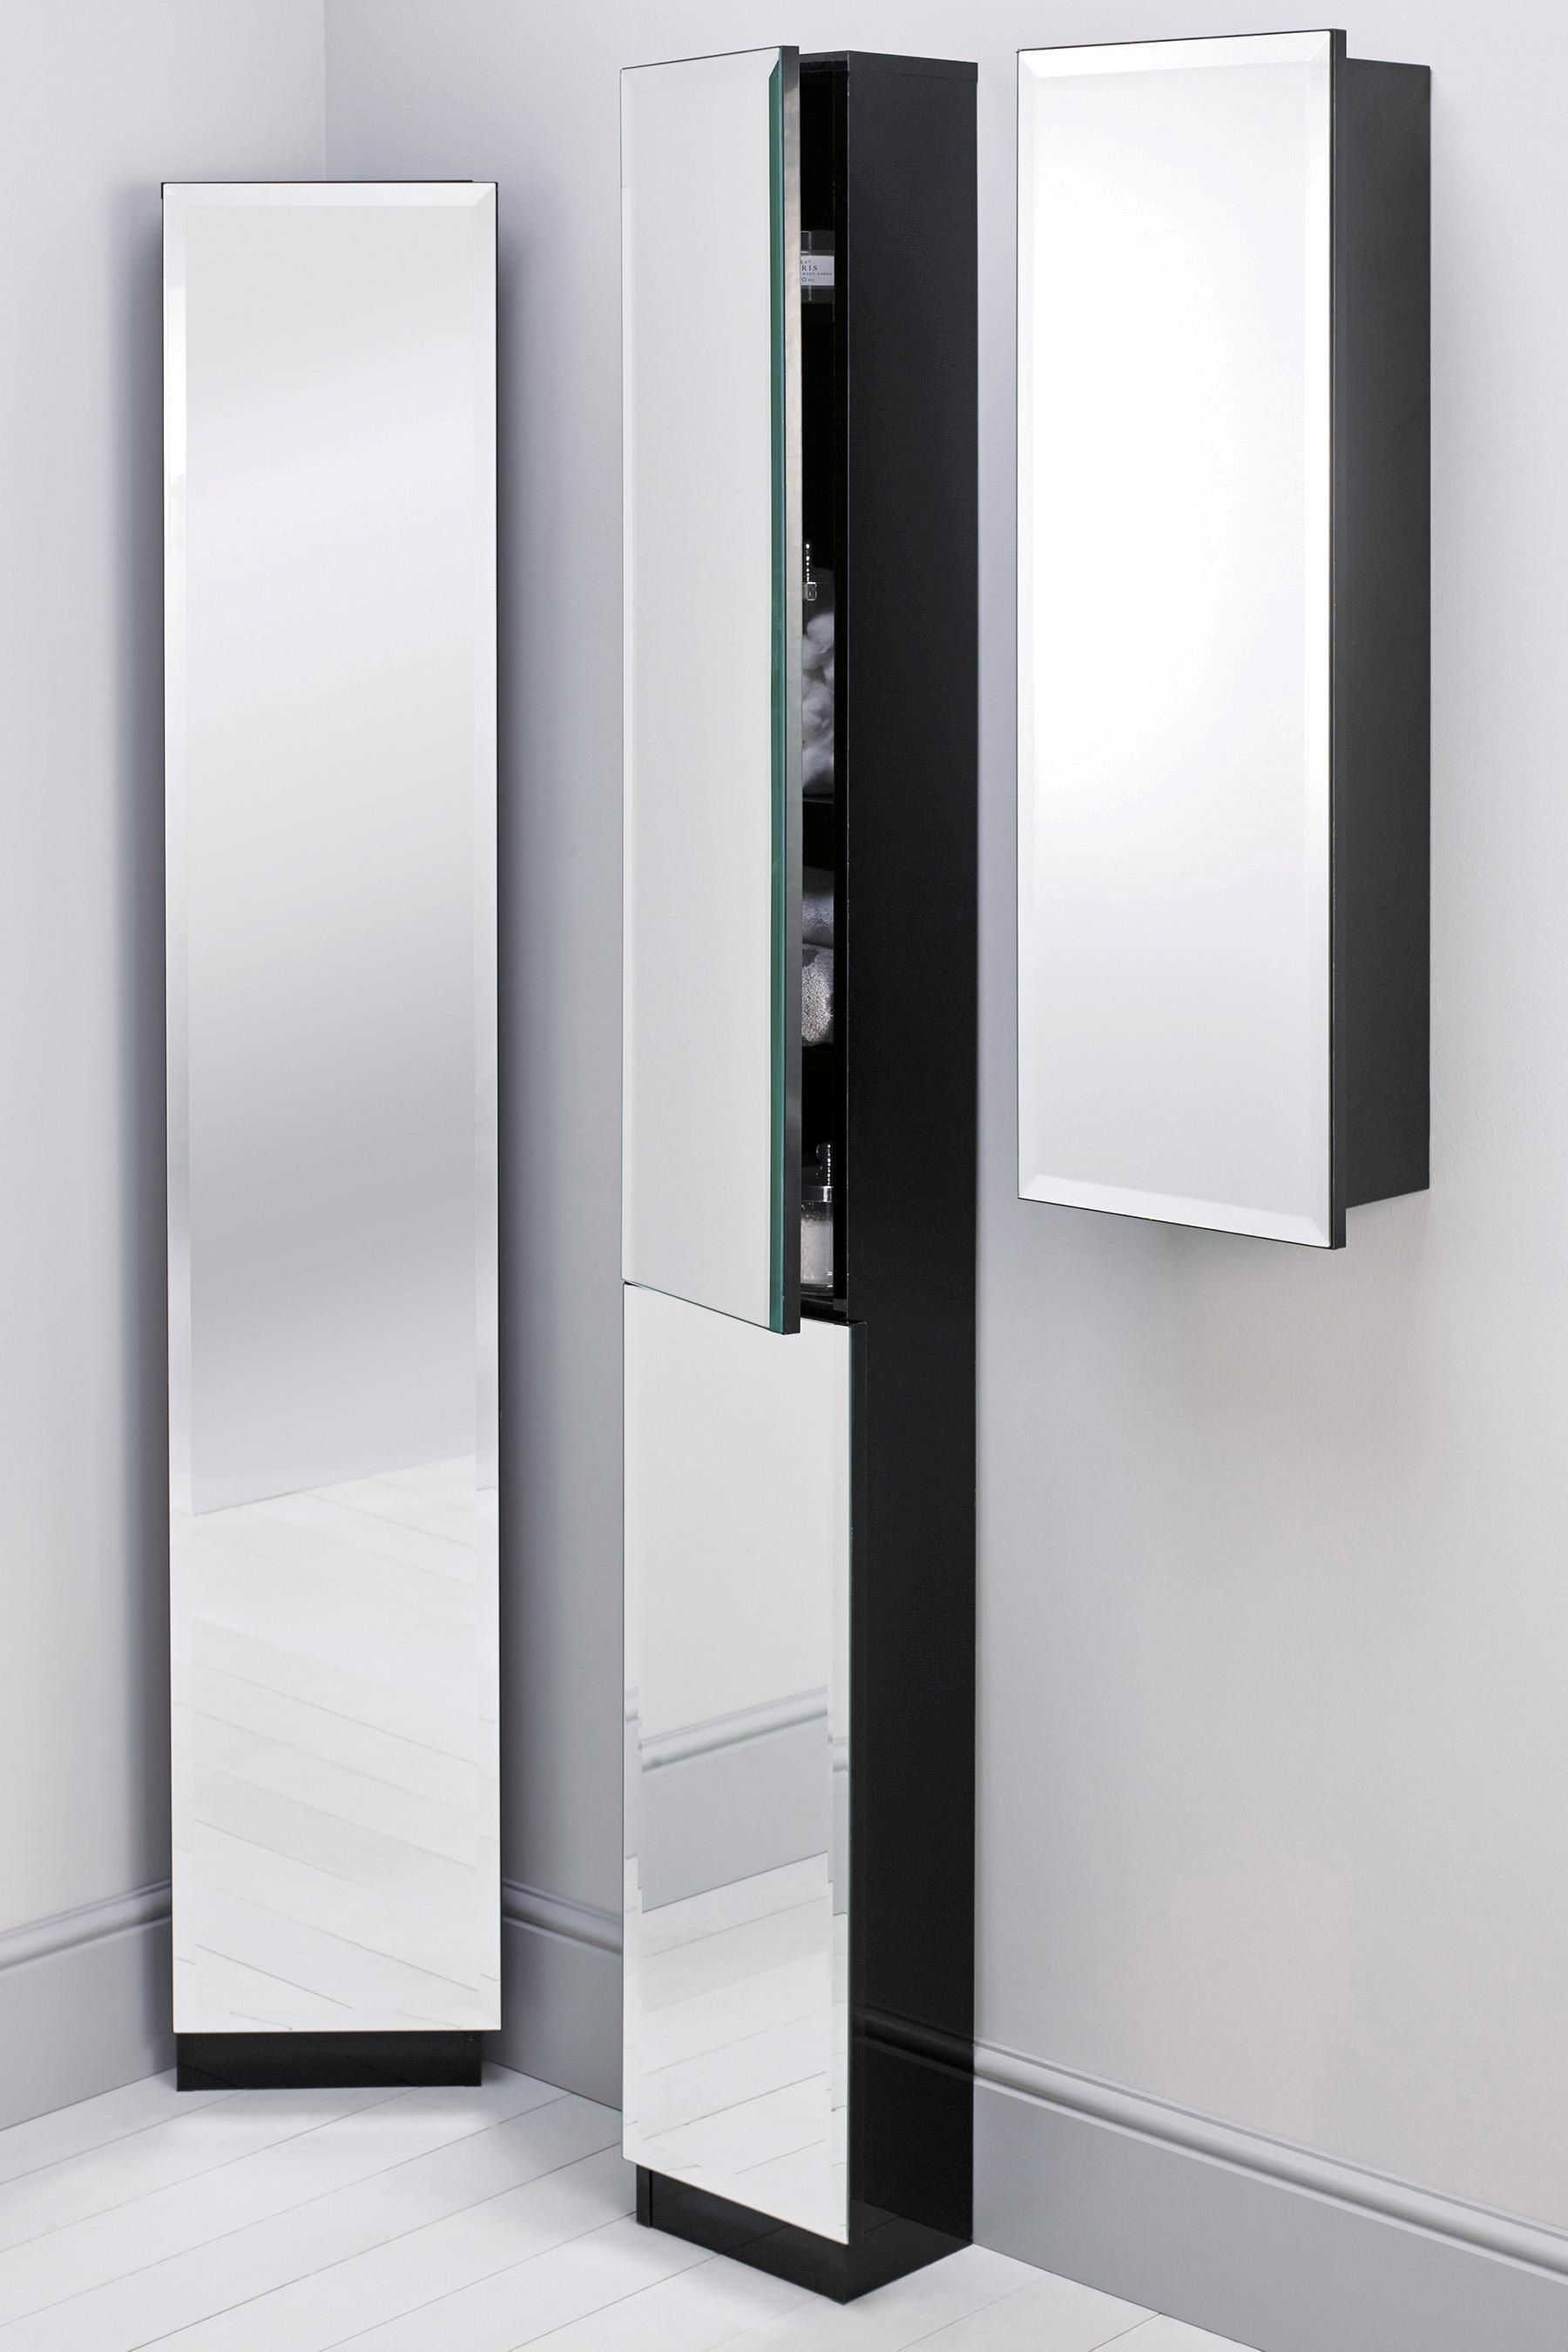 B Q Slimline Bathroom Cabinet Tall Bathroom Storage Slim Bathroom Storage Slimline Bathroom Storage